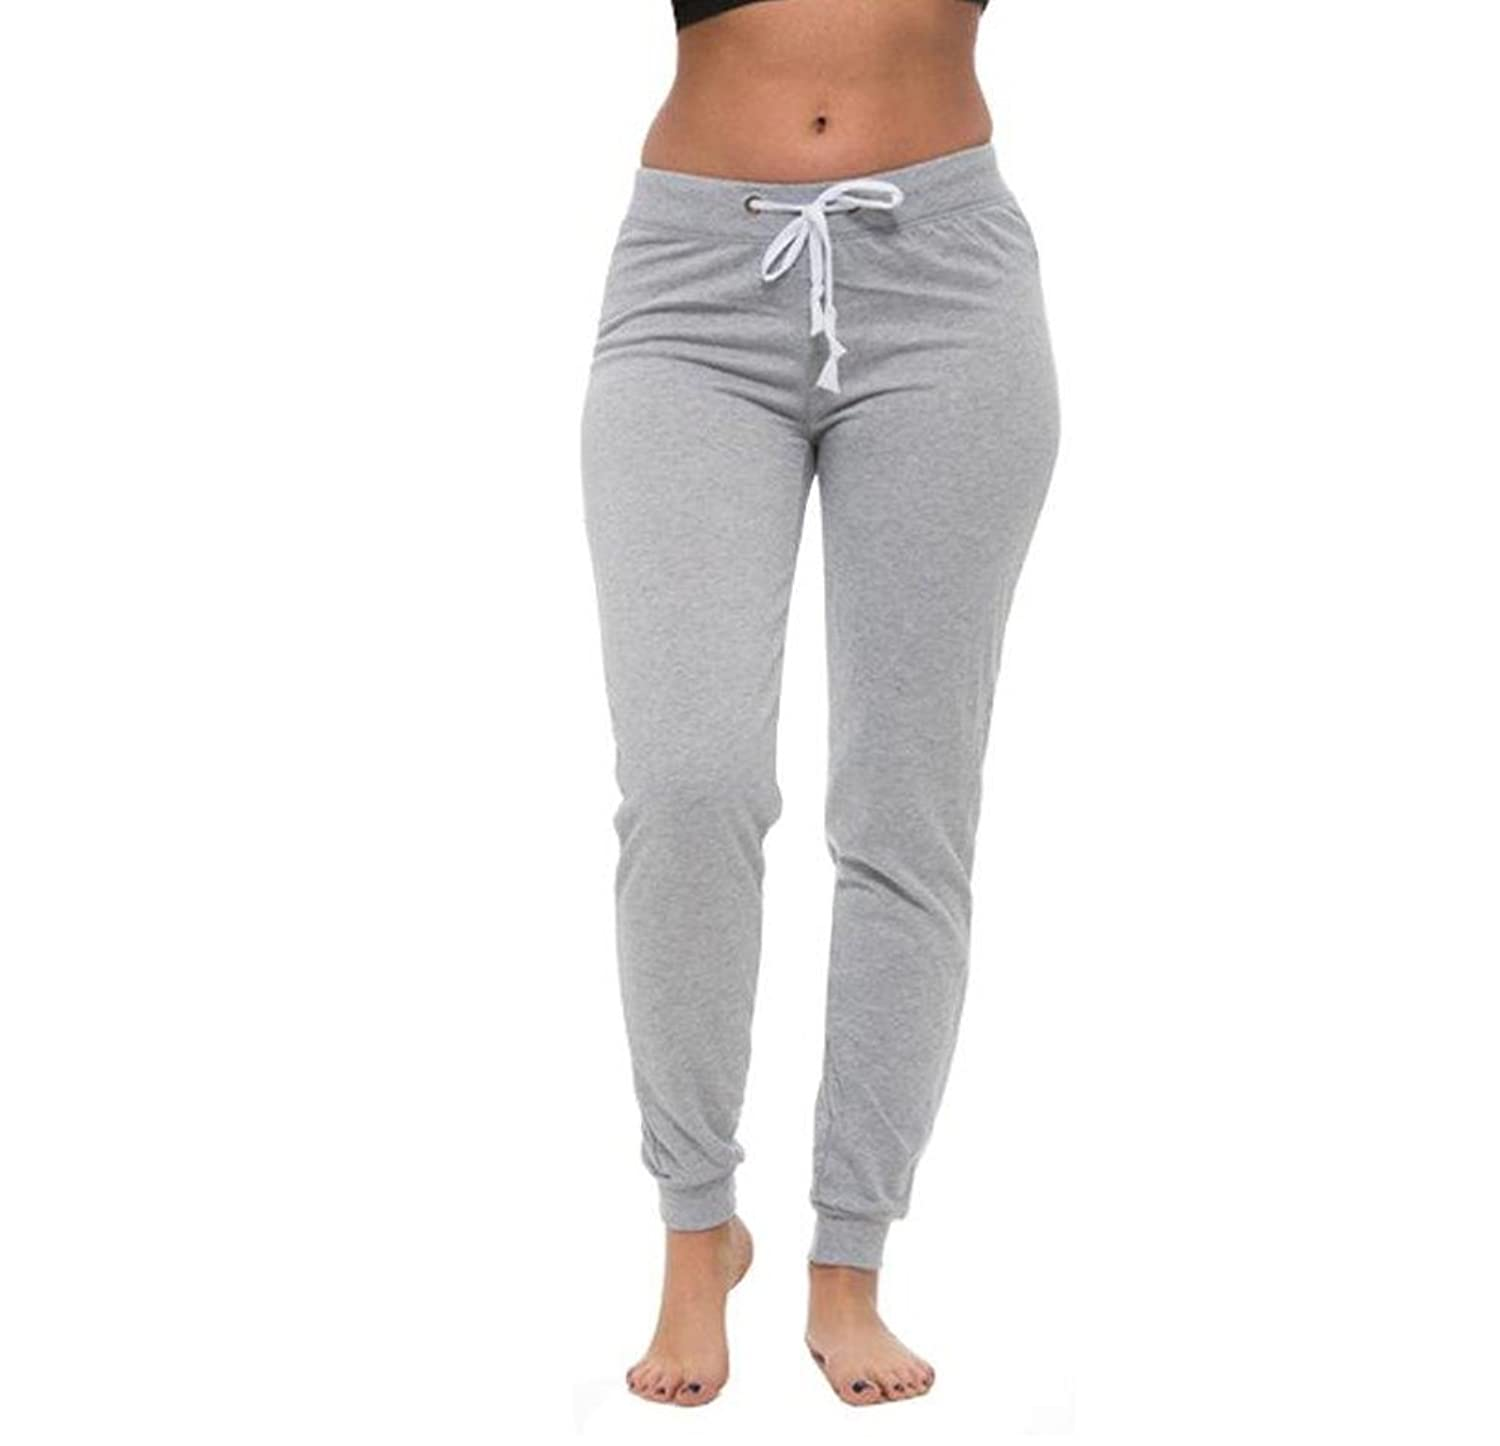 Coco-Limon Sweatpants for Women - Long, Fleece, Drawstring Waist at Amazon Womens Clothing store: